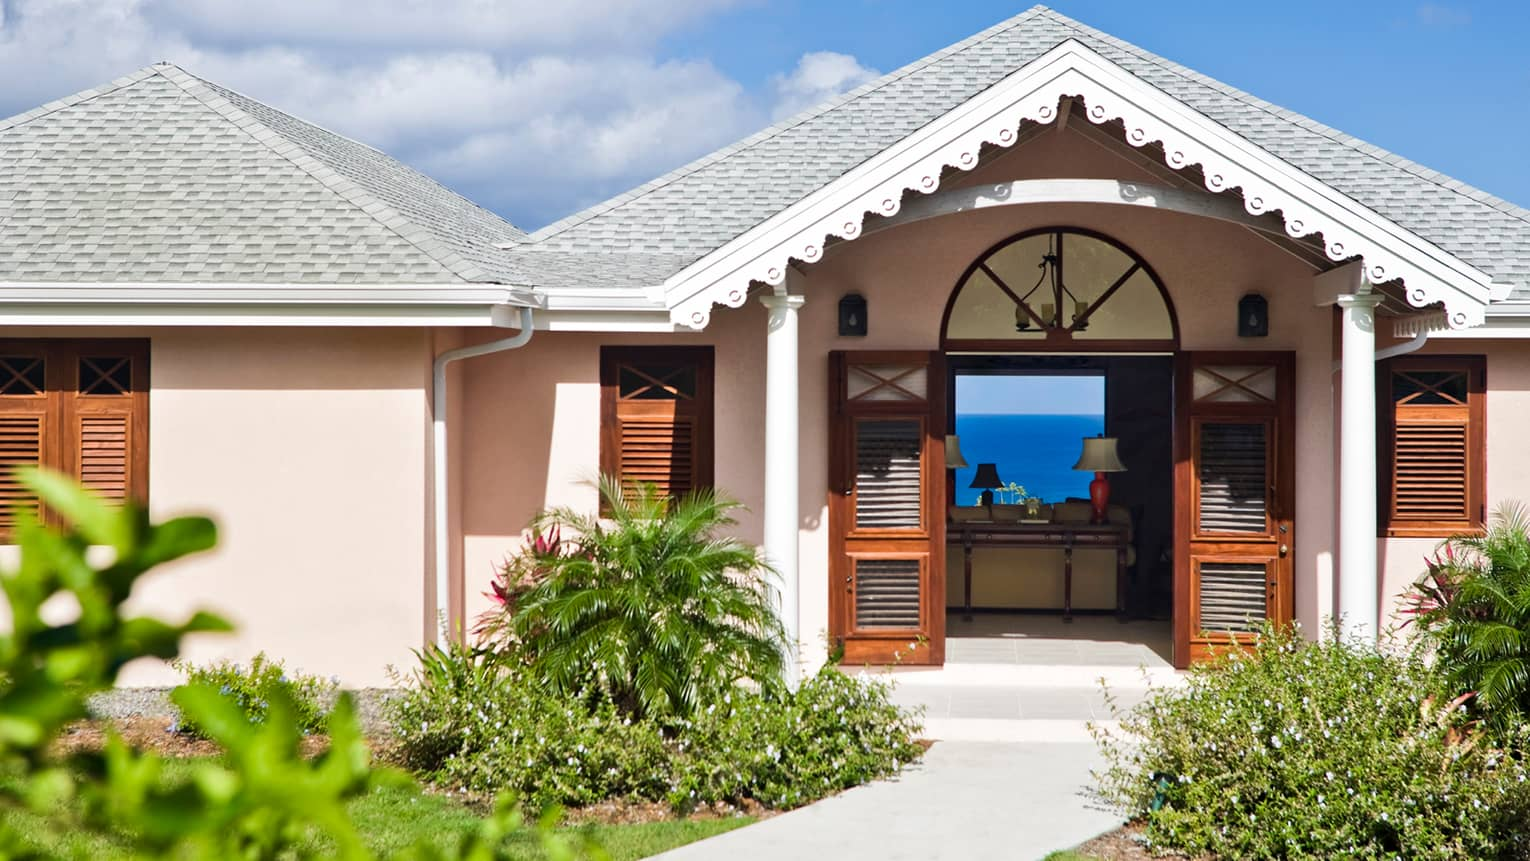 Sunset Hill Residence Villa exterior, pink bungalow with white trim